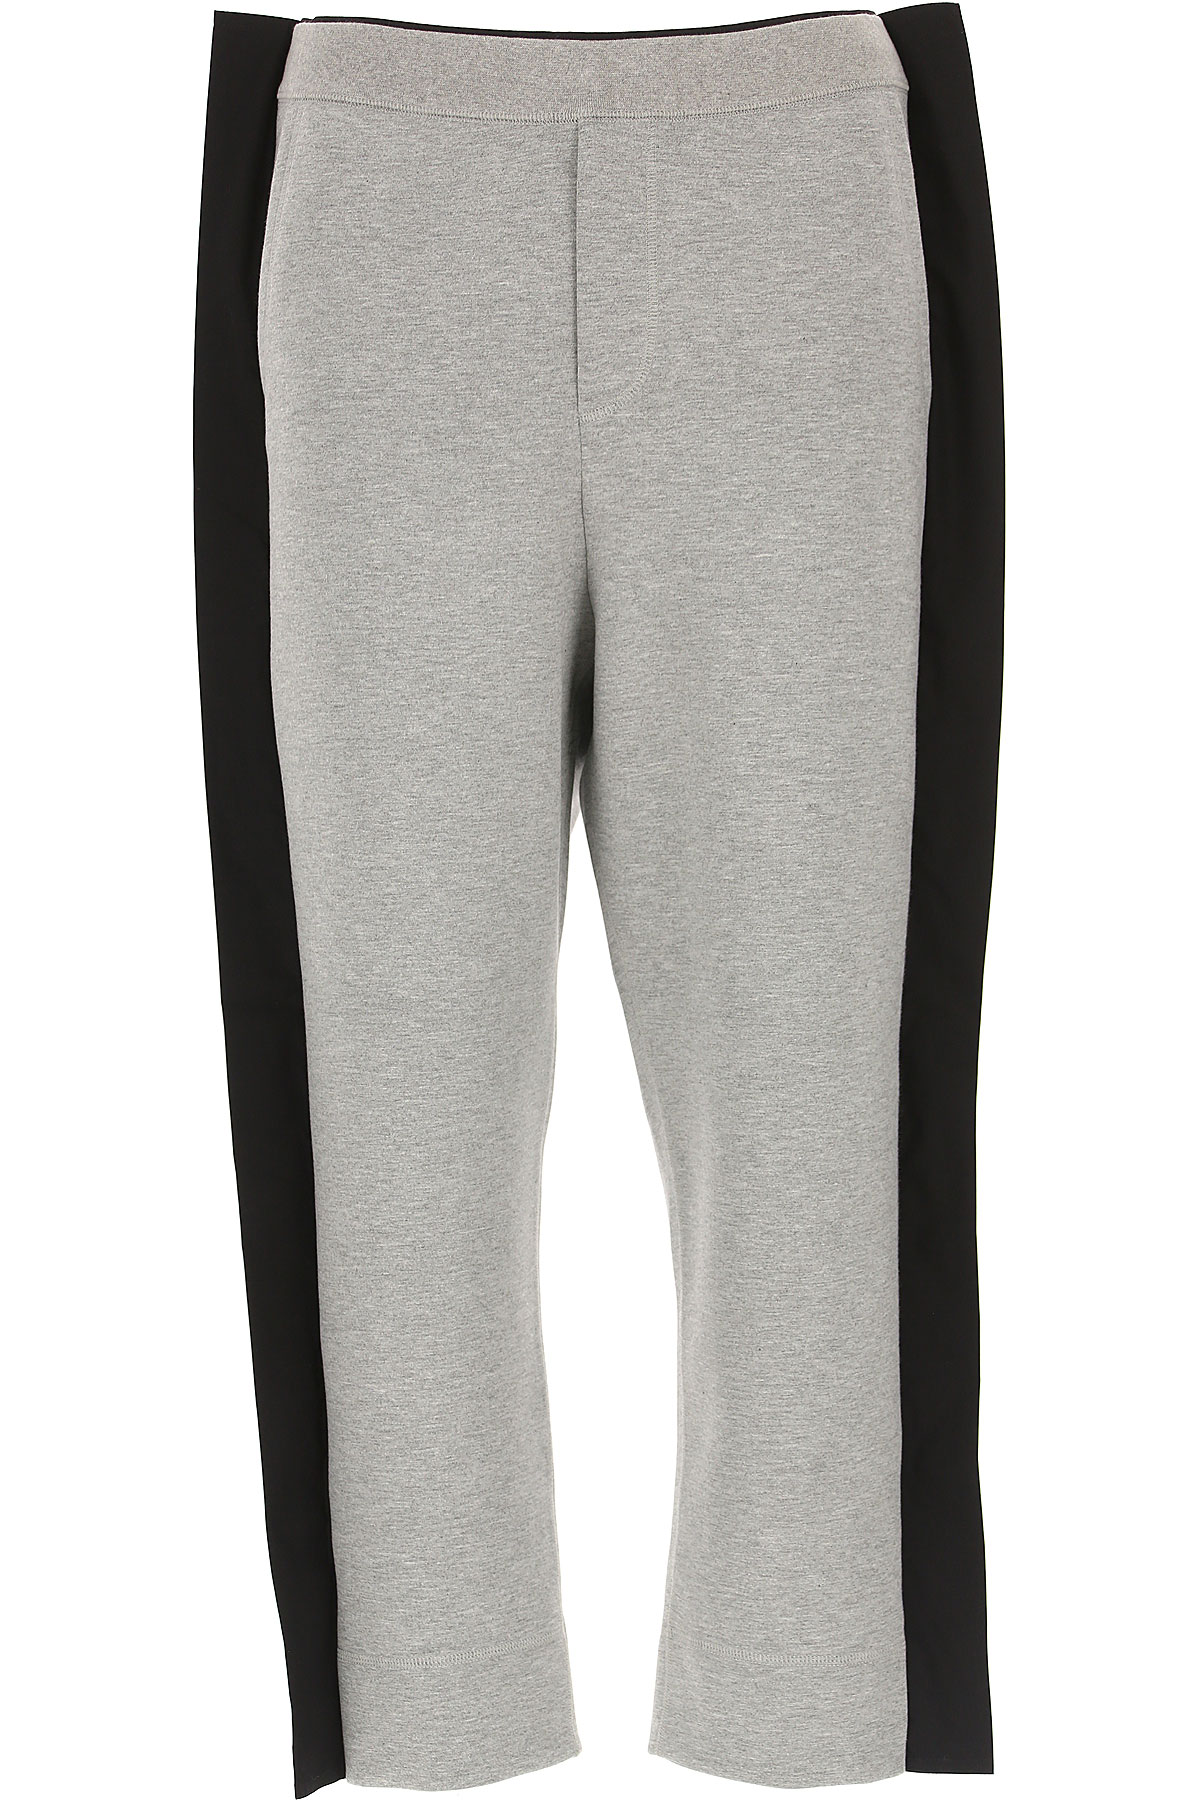 Image of Craig Green Pants for Men, Grey, viscosa, 2017, 32 34